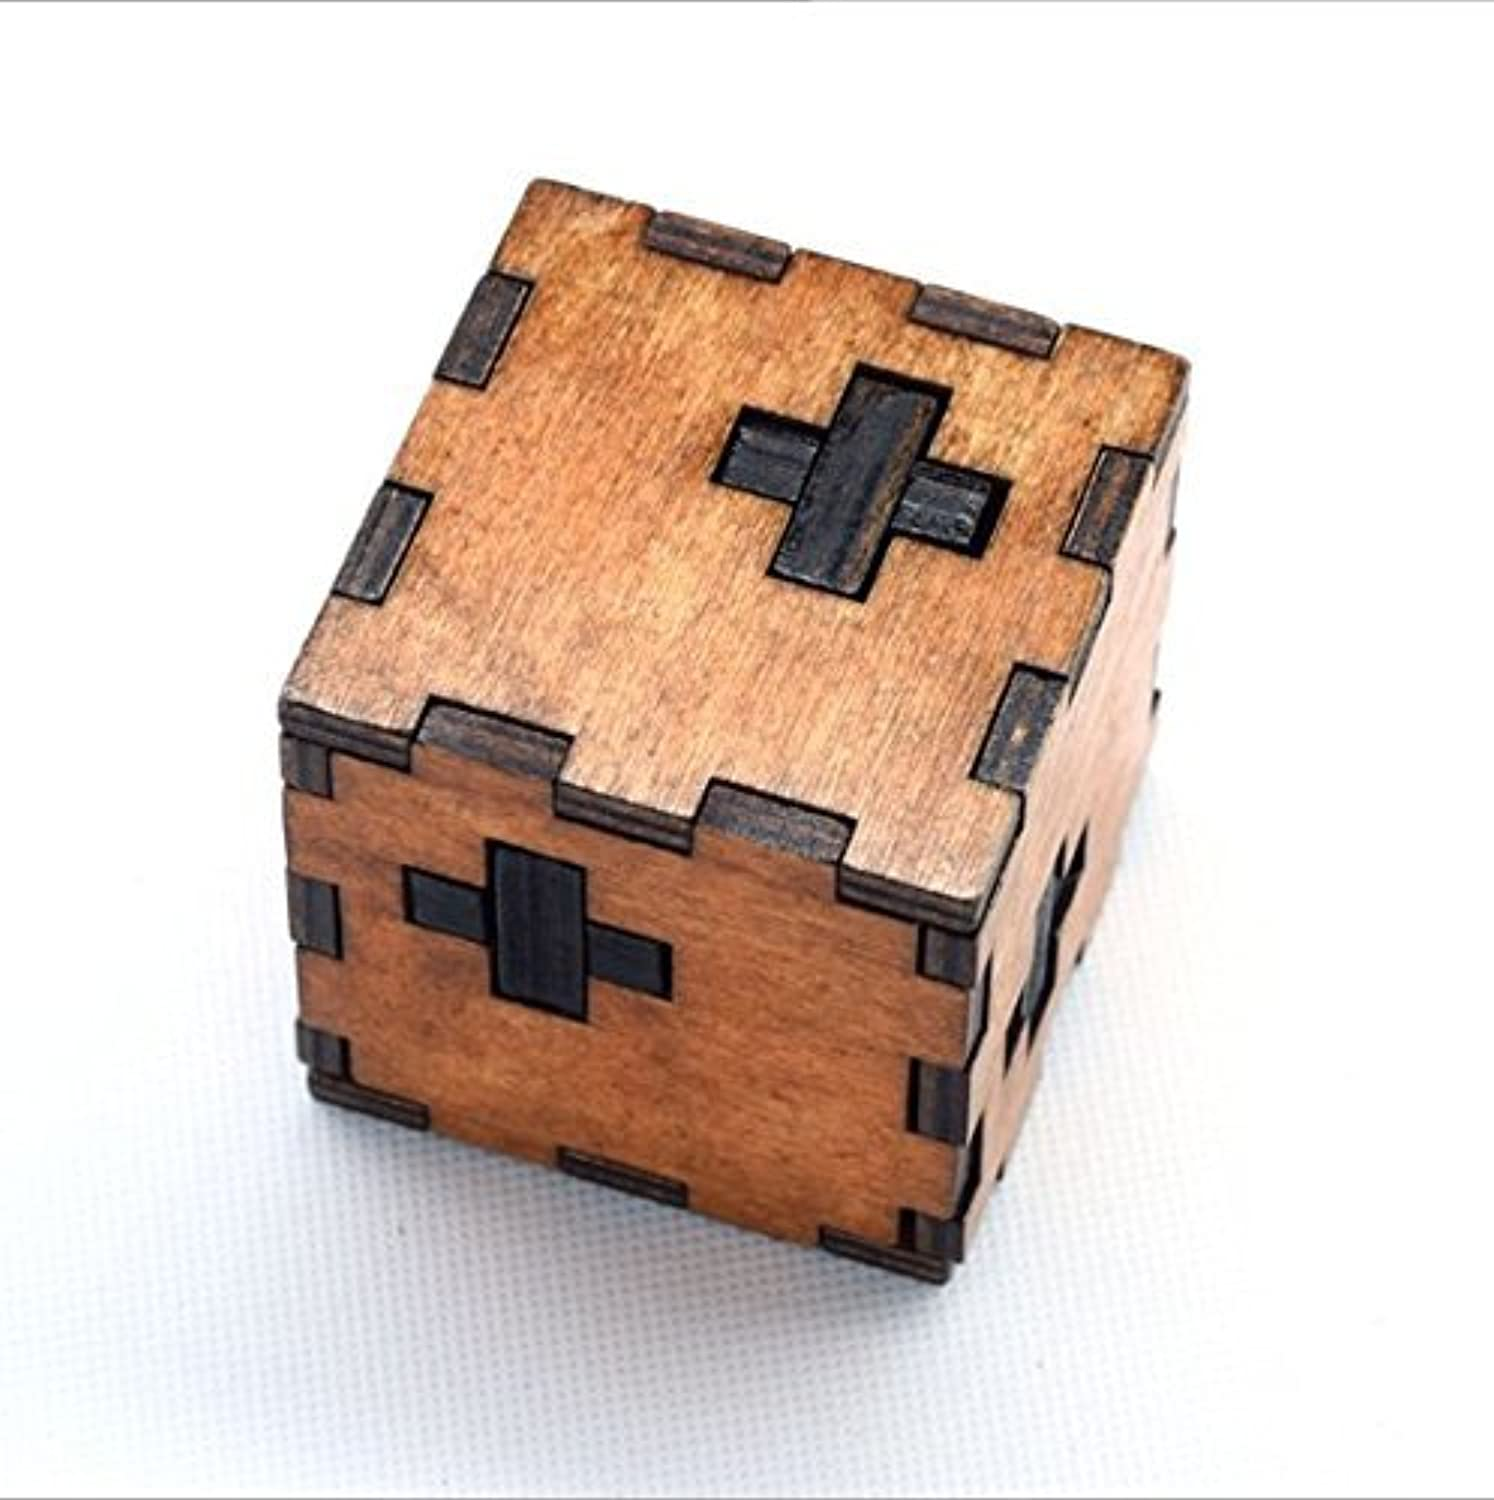 URToys Kids Toys Swiss Cube A Wooden Blocks Toys Of 3d Puzzle Also For Adult Kong Ming Lock A Good Gift From Ancient Wise Men For You Familys